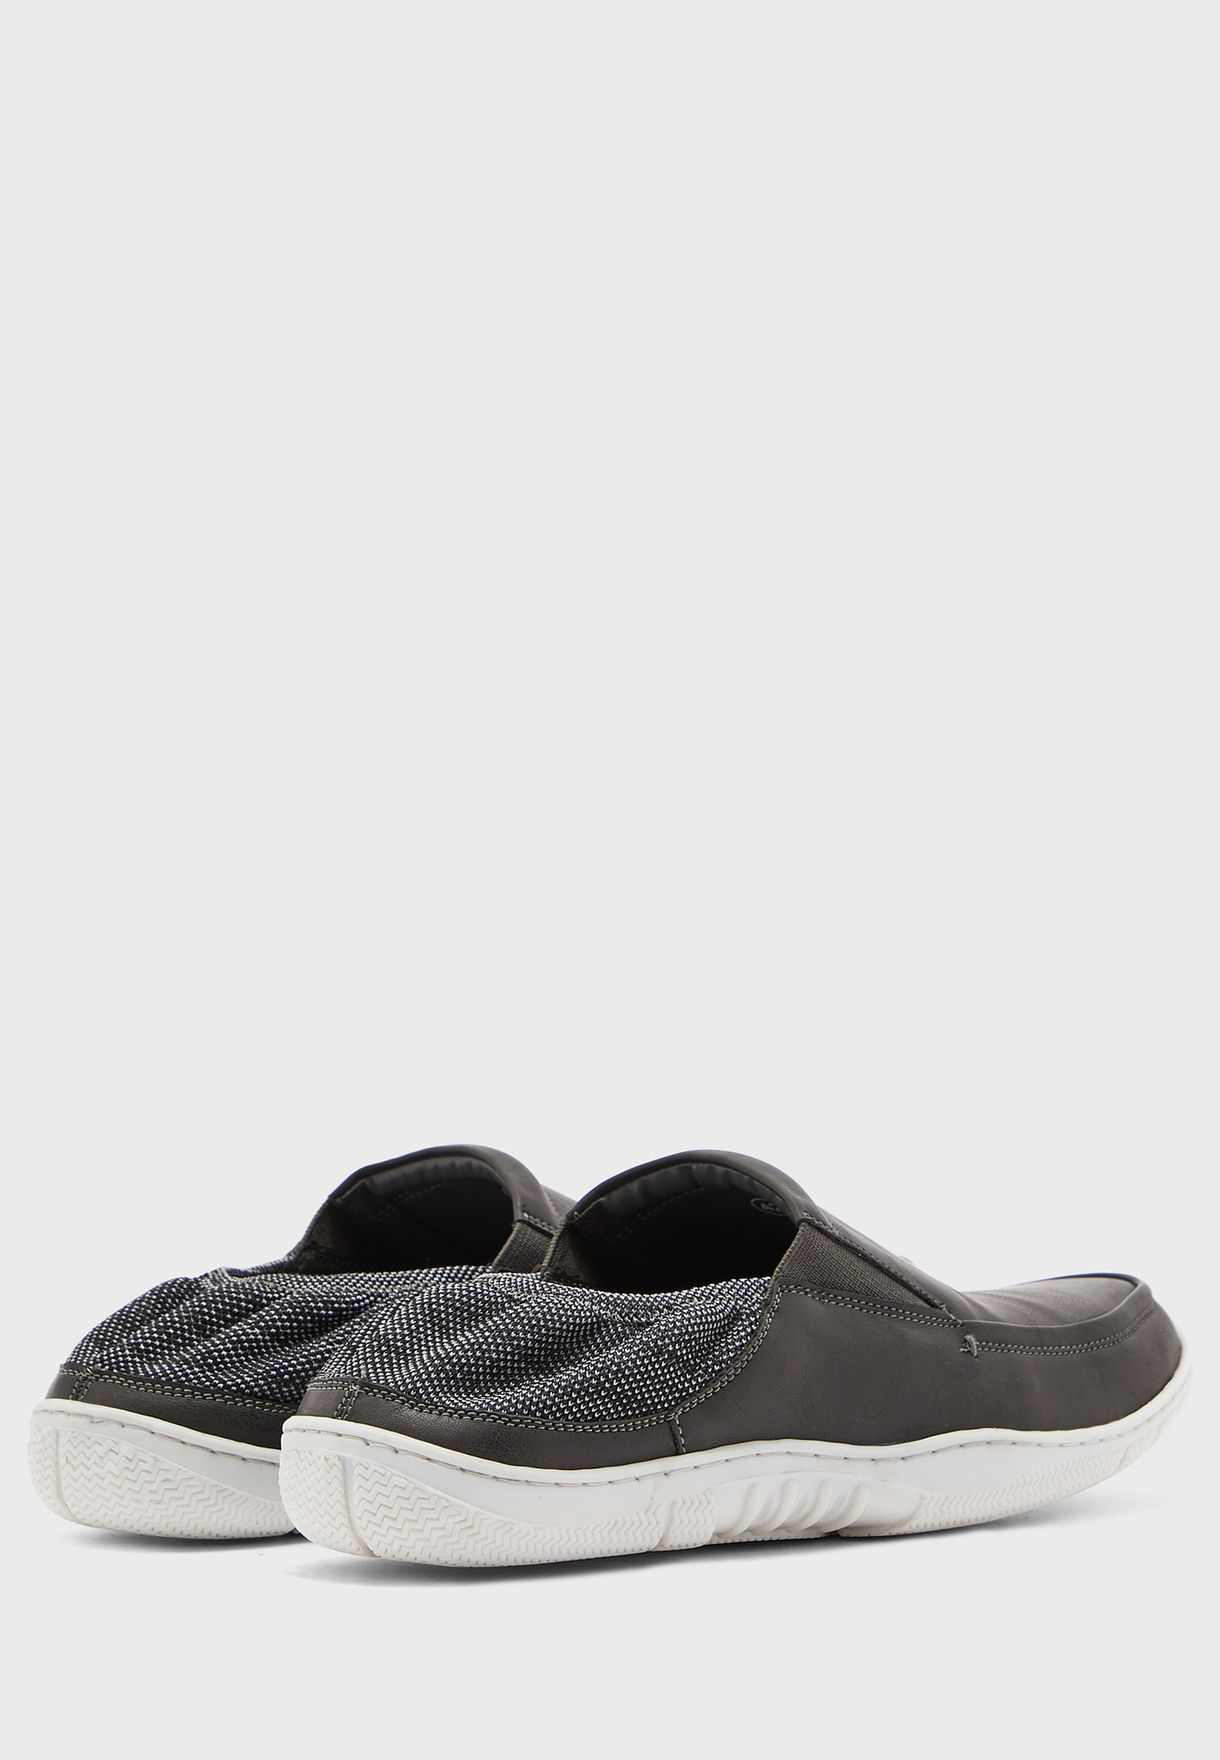 Casual Slide Slip Ons